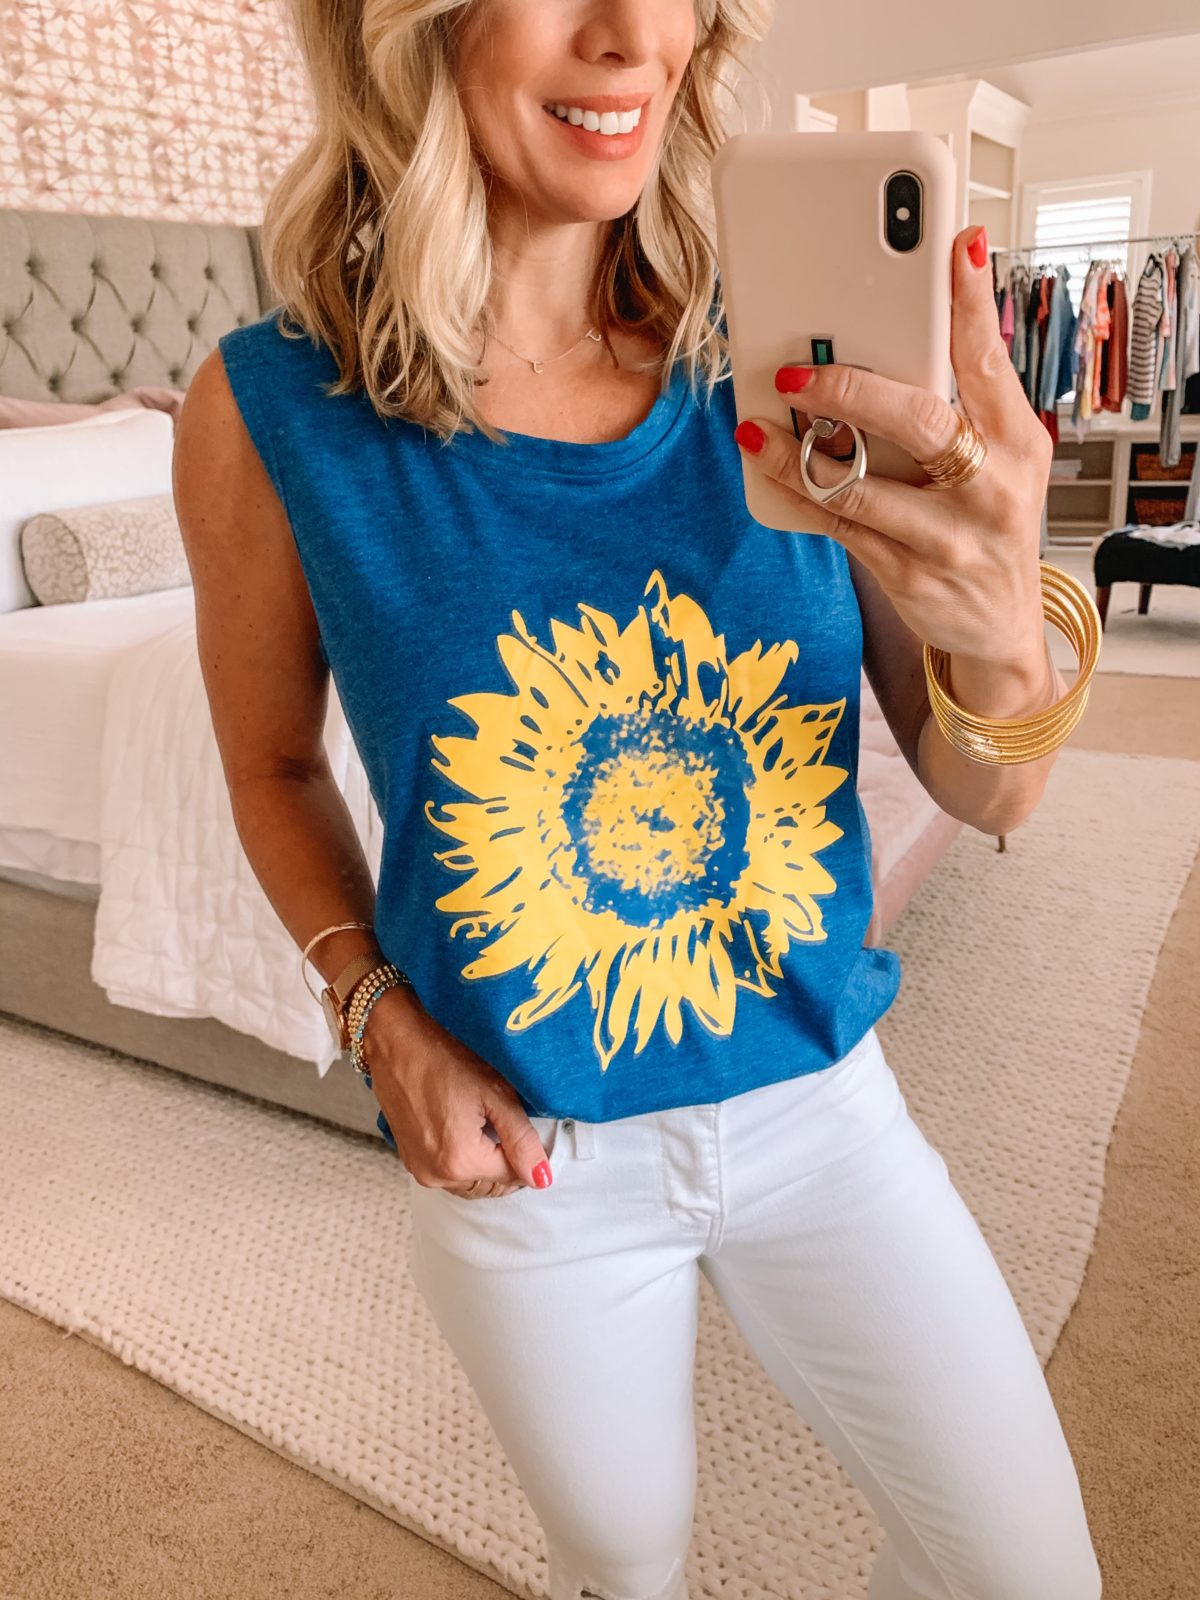 Amazon Fashion Finds, Sunflower Tank, White Denim Jeans